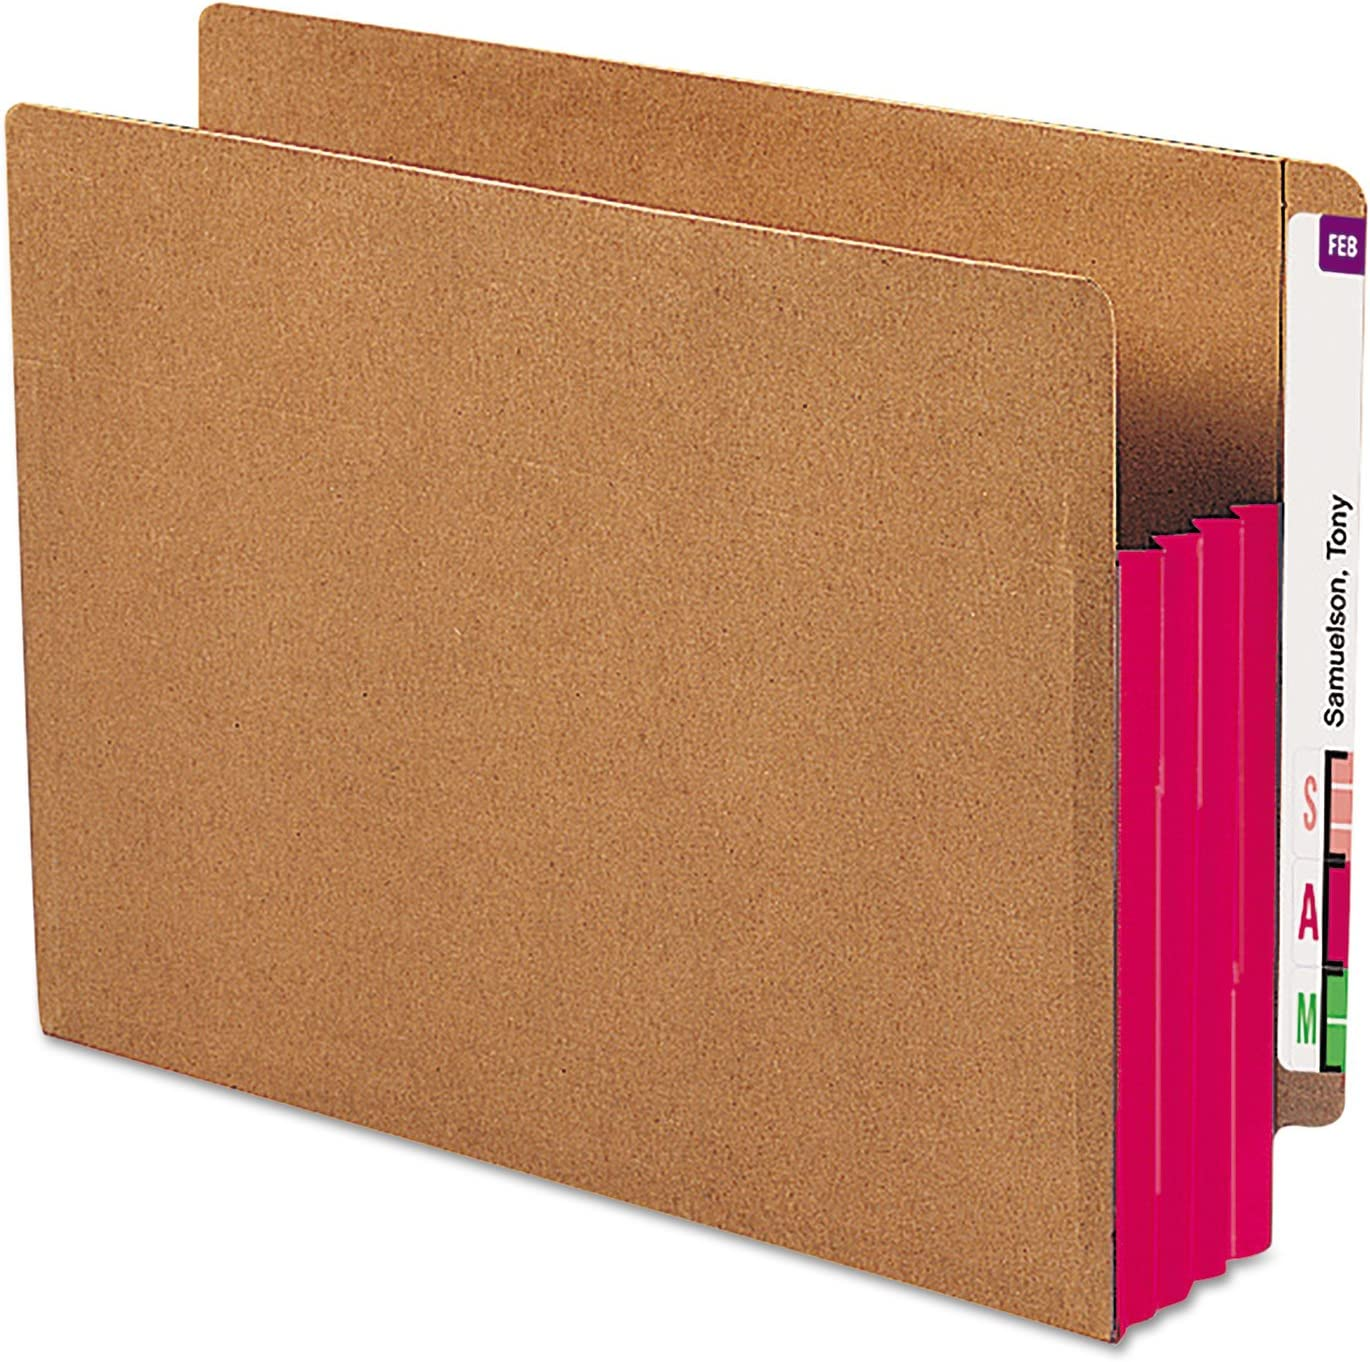 SMD73686 Smead 73686 Red Extra Wide End Tab File Pockets with Reinforced Tab and Colored Gusset